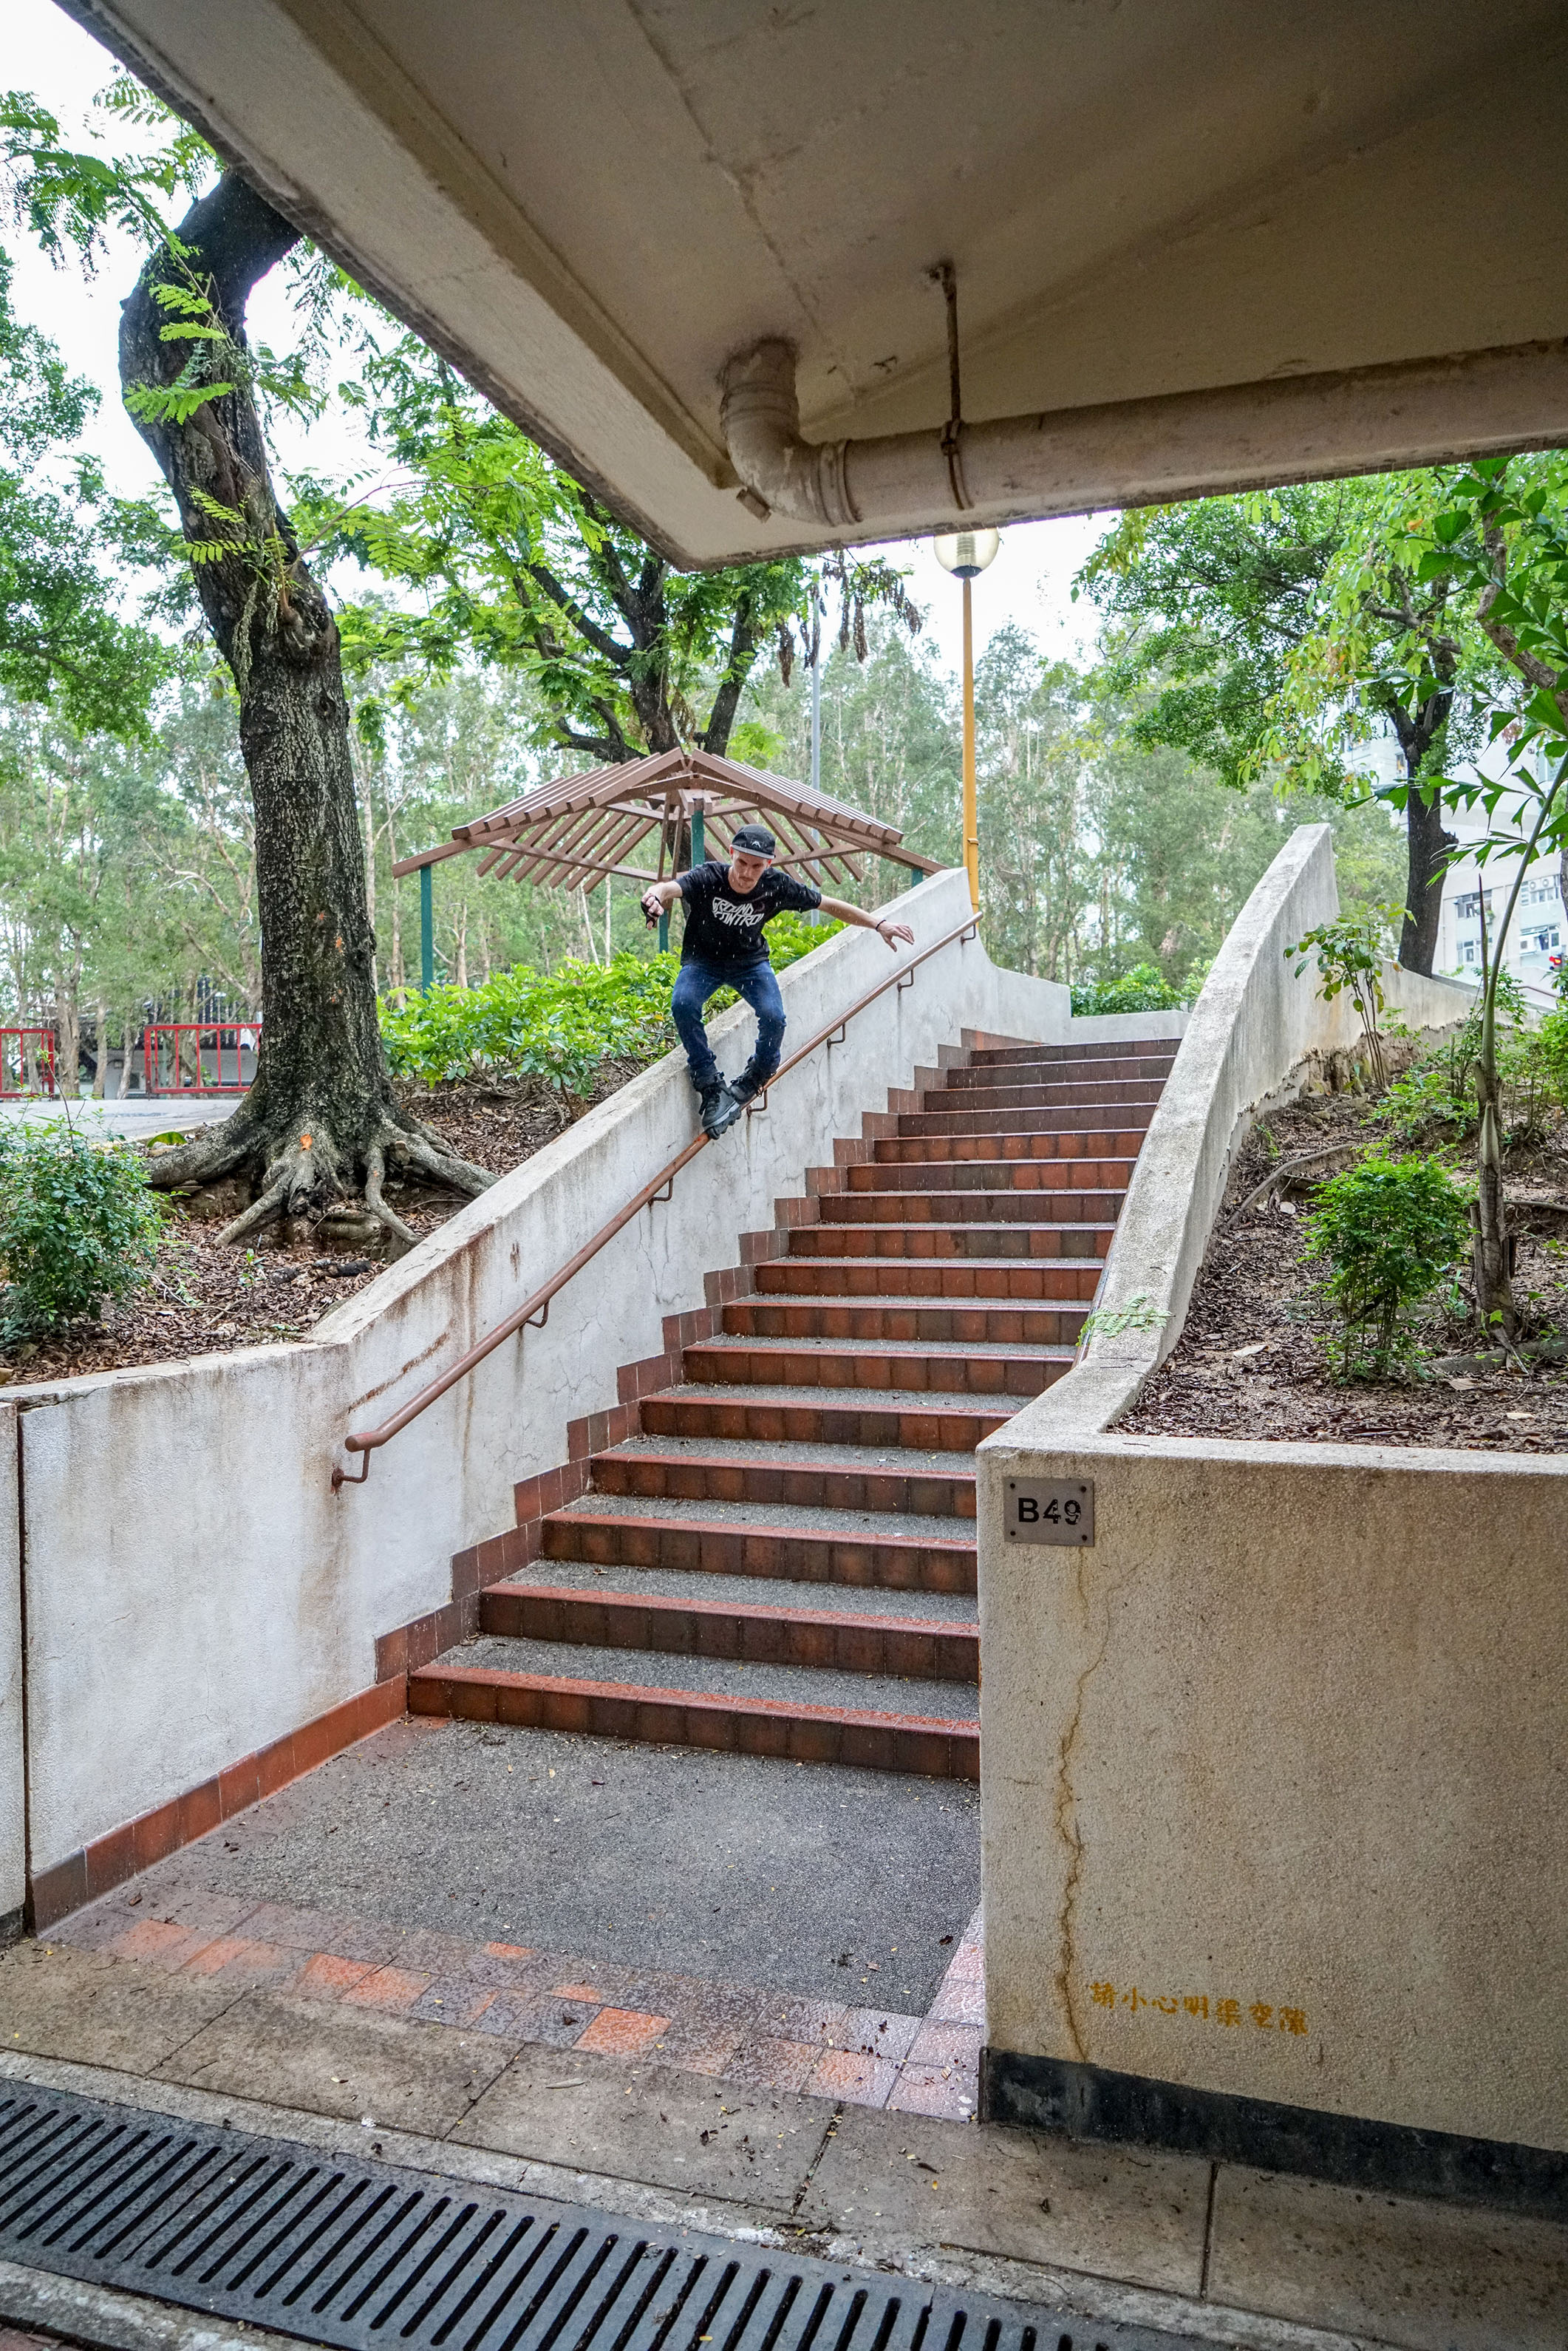 X Grind in the rain - photo by Kyle Strauss